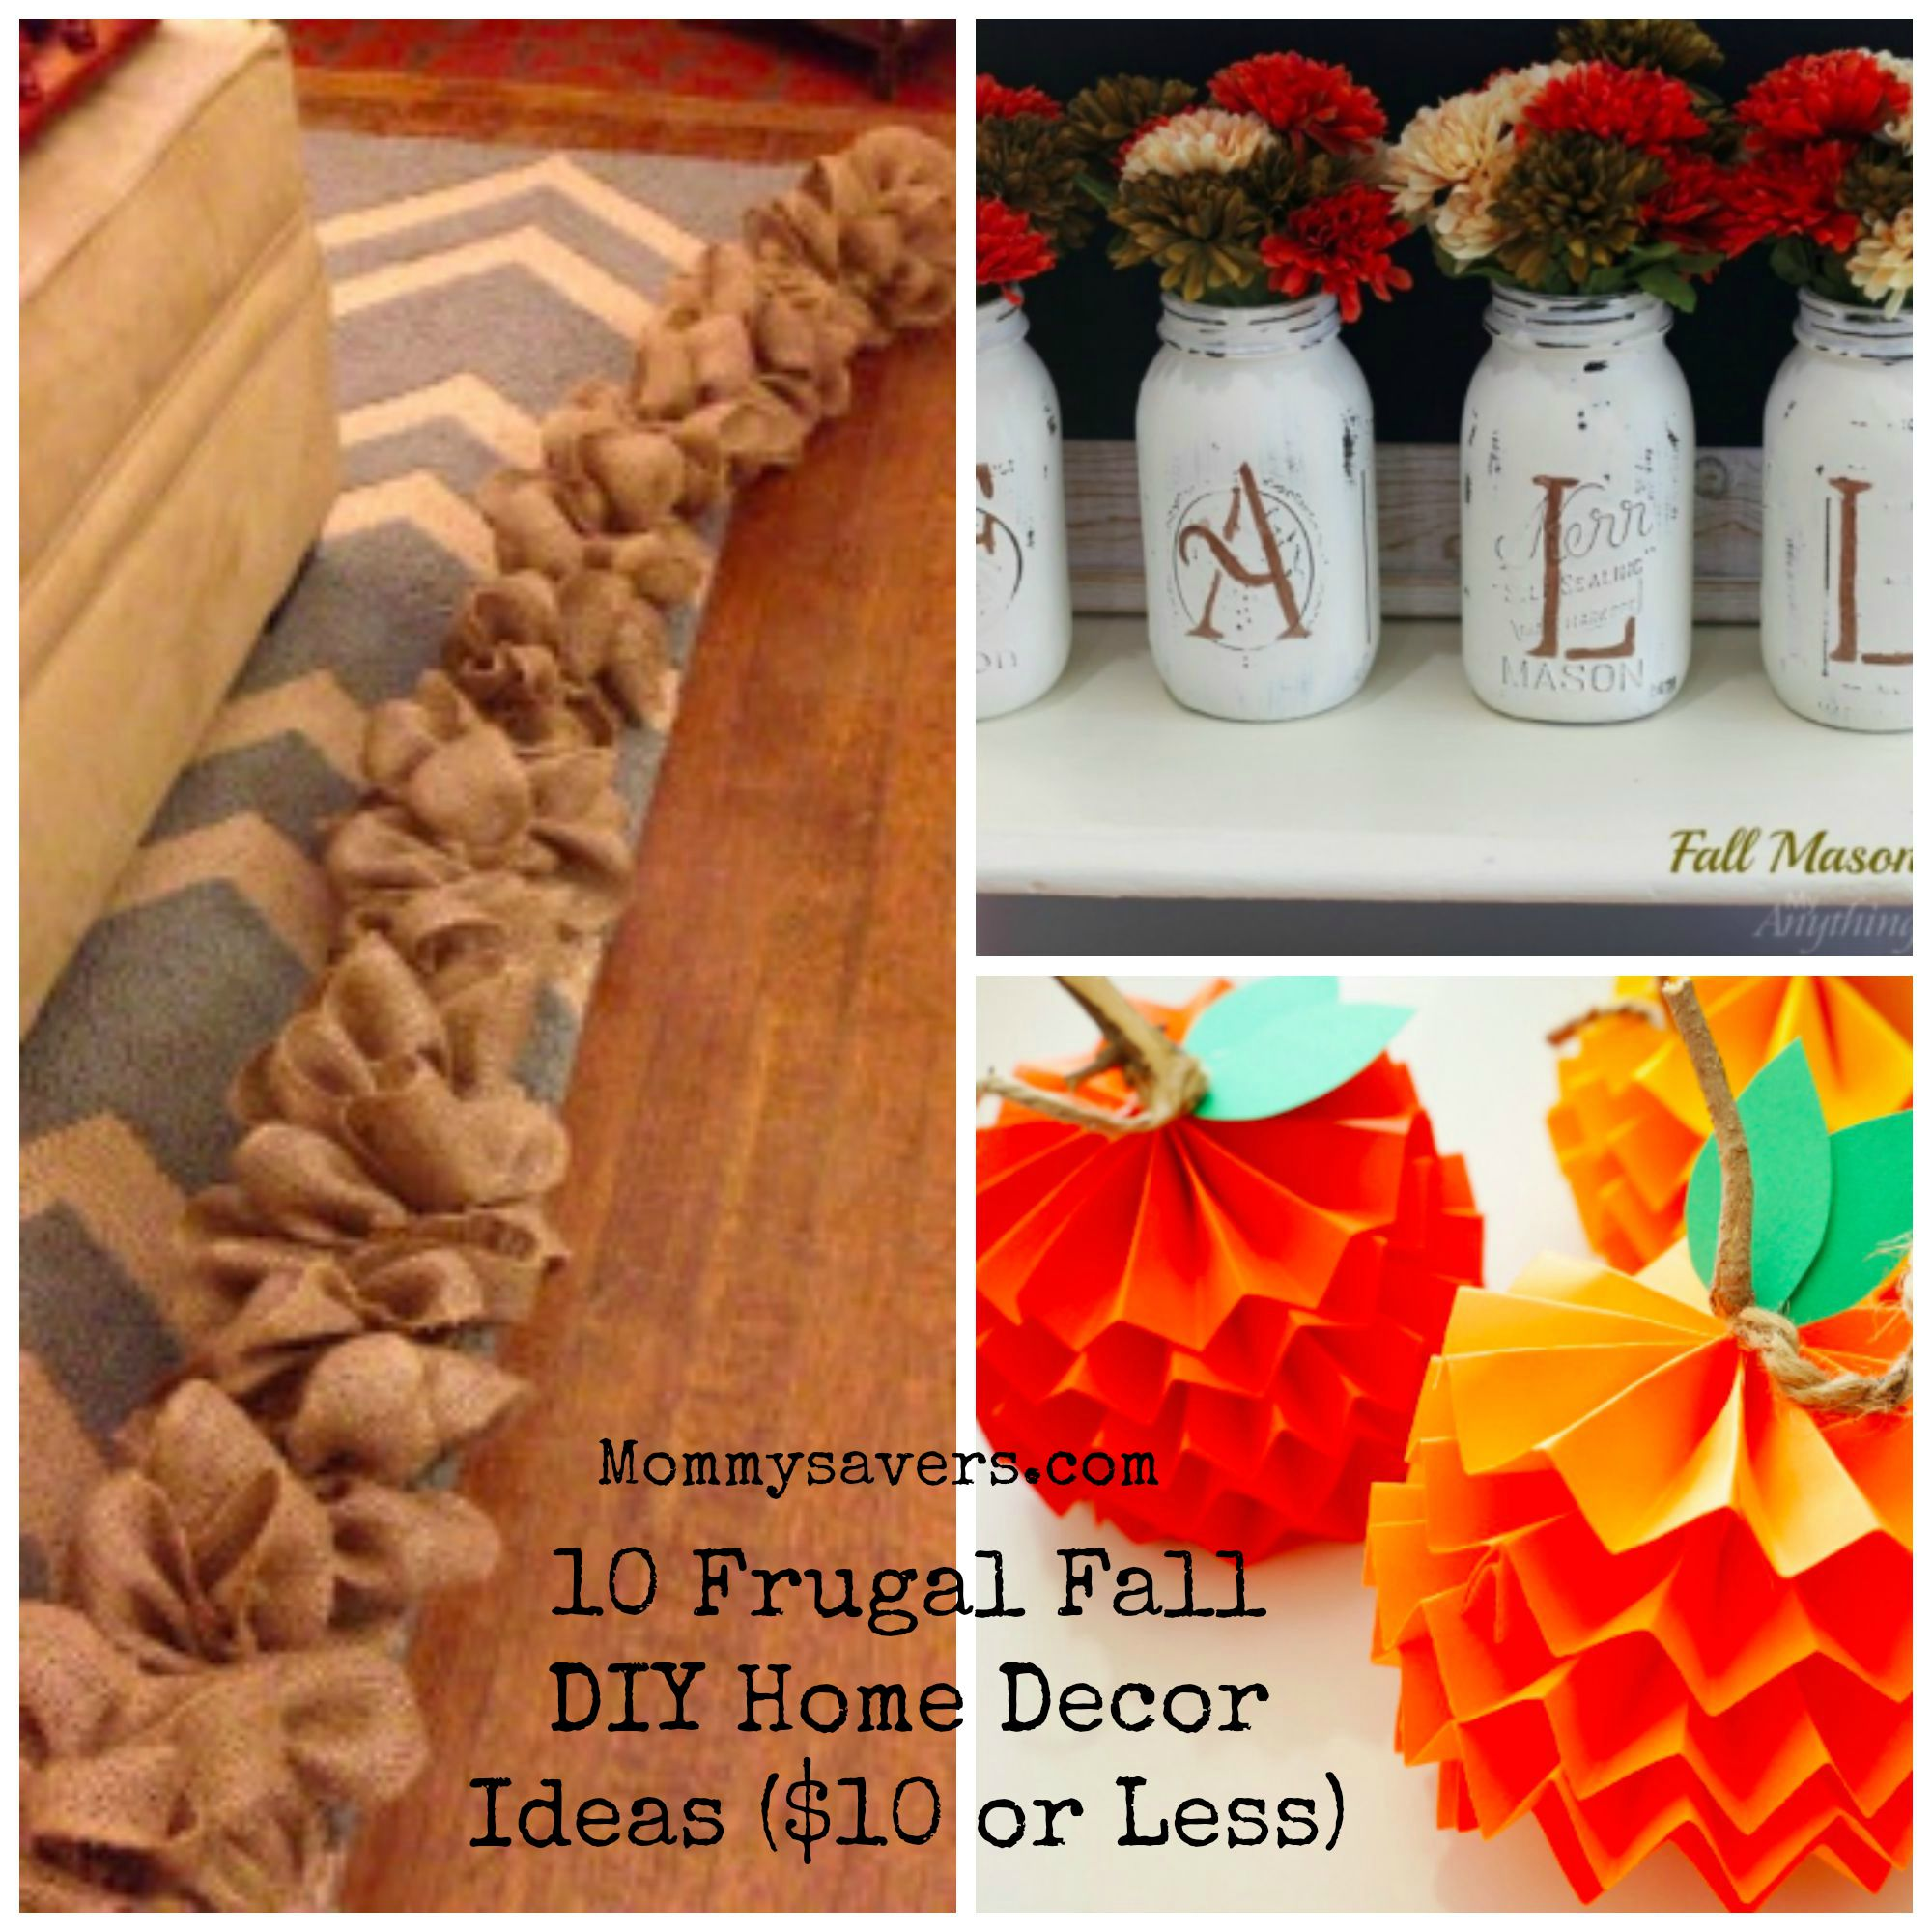 10 Frugal Fall DIY Home Decor Ideas 10 Or Less Mommysavers